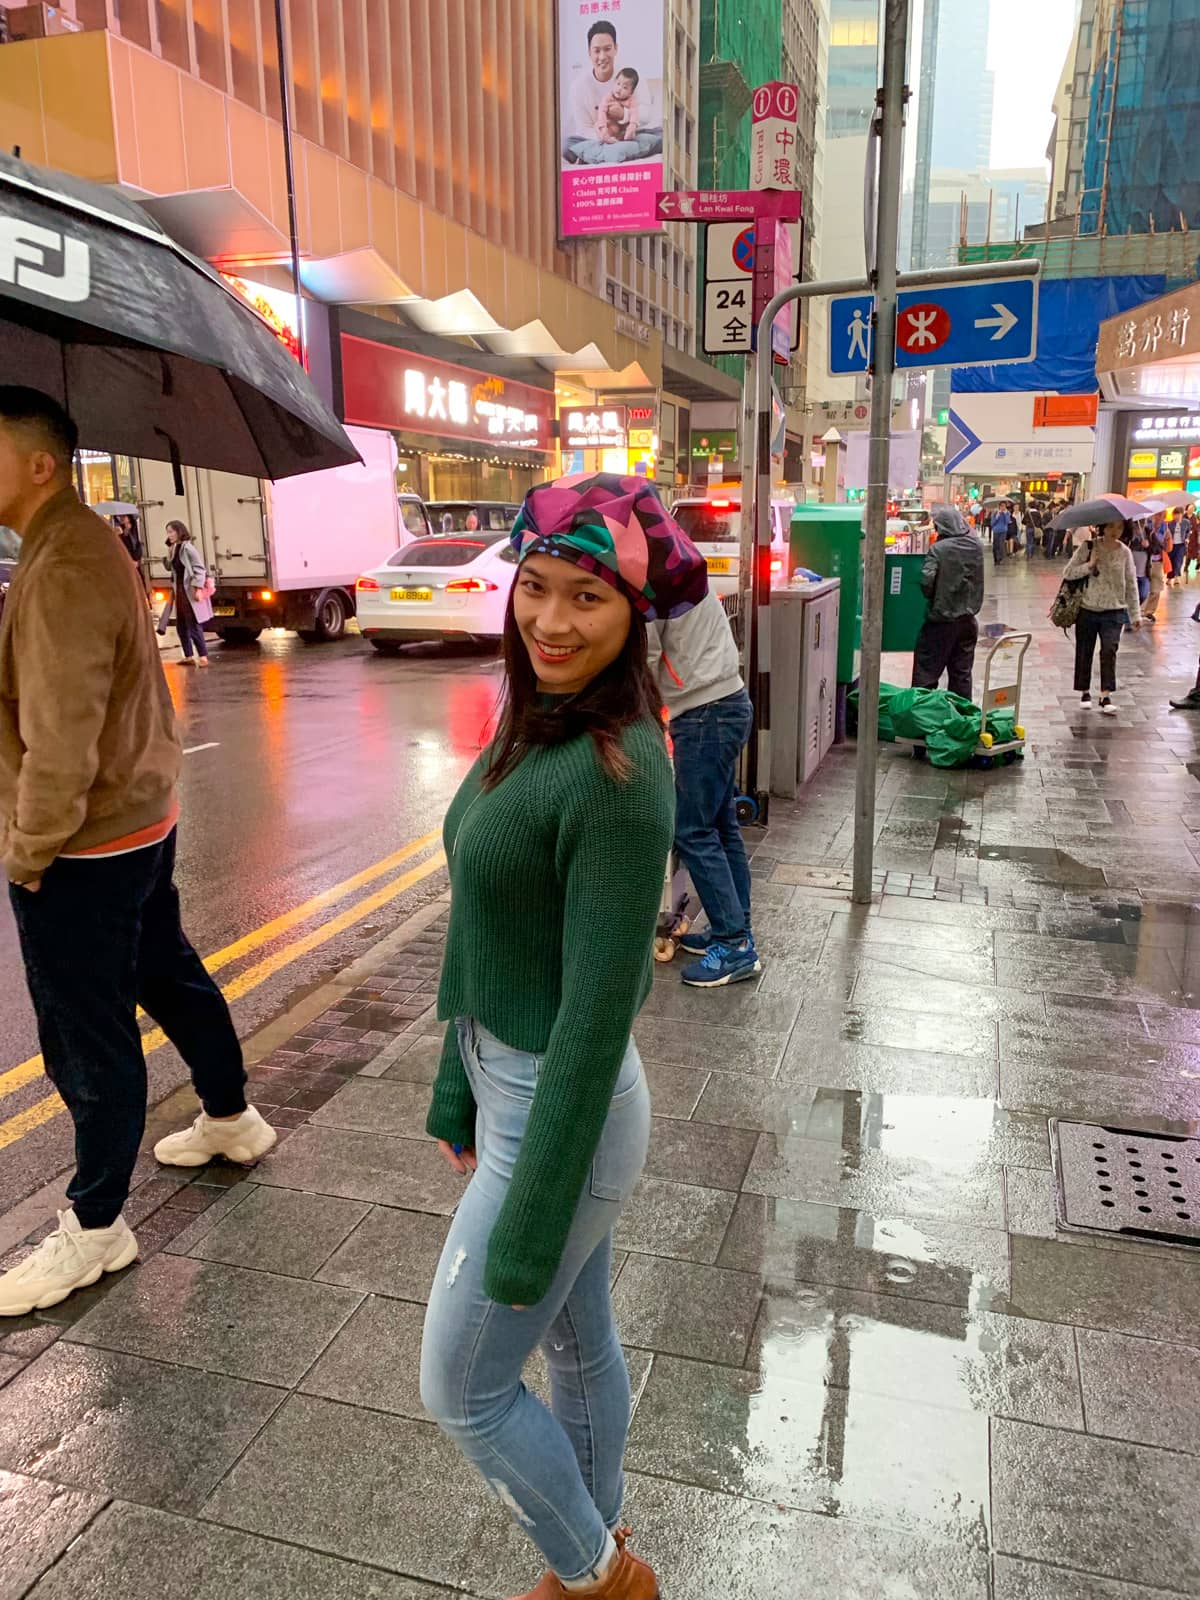 A woman wearing a dark green jumper and light blue jeans and brown boots, with a brightly coloured showercap on her head. She is outside in the rain in a street in Hong Kong